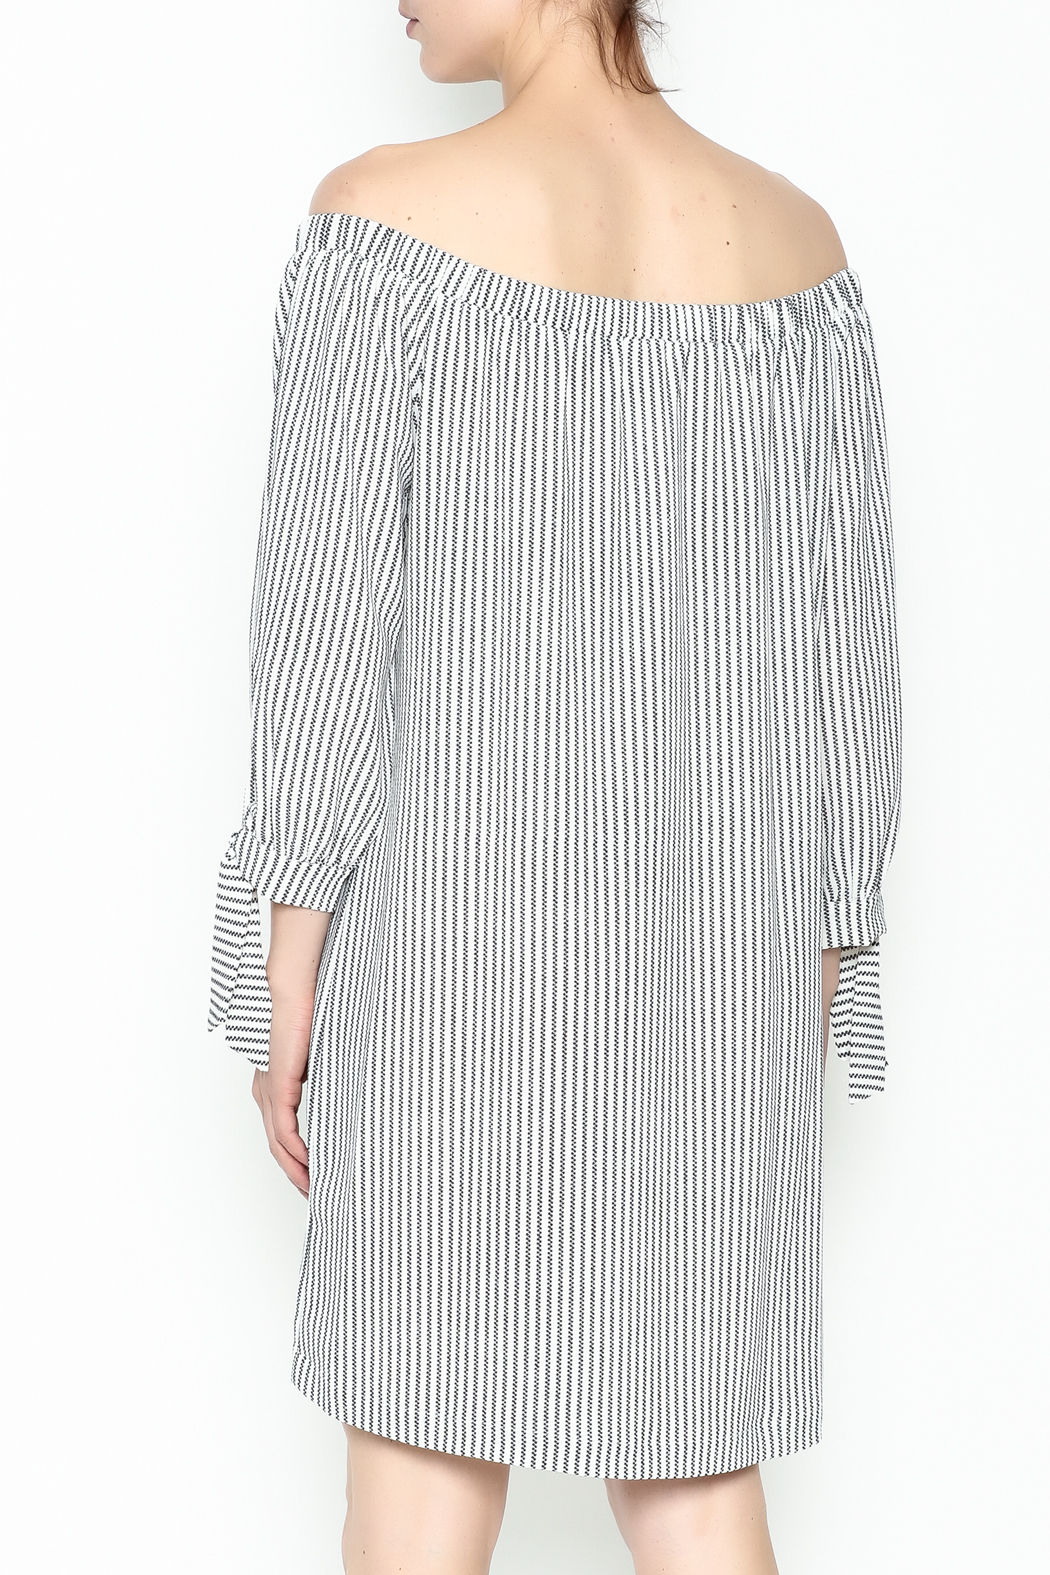 Veronica M Tatiana Striped Dress - Back Cropped Image